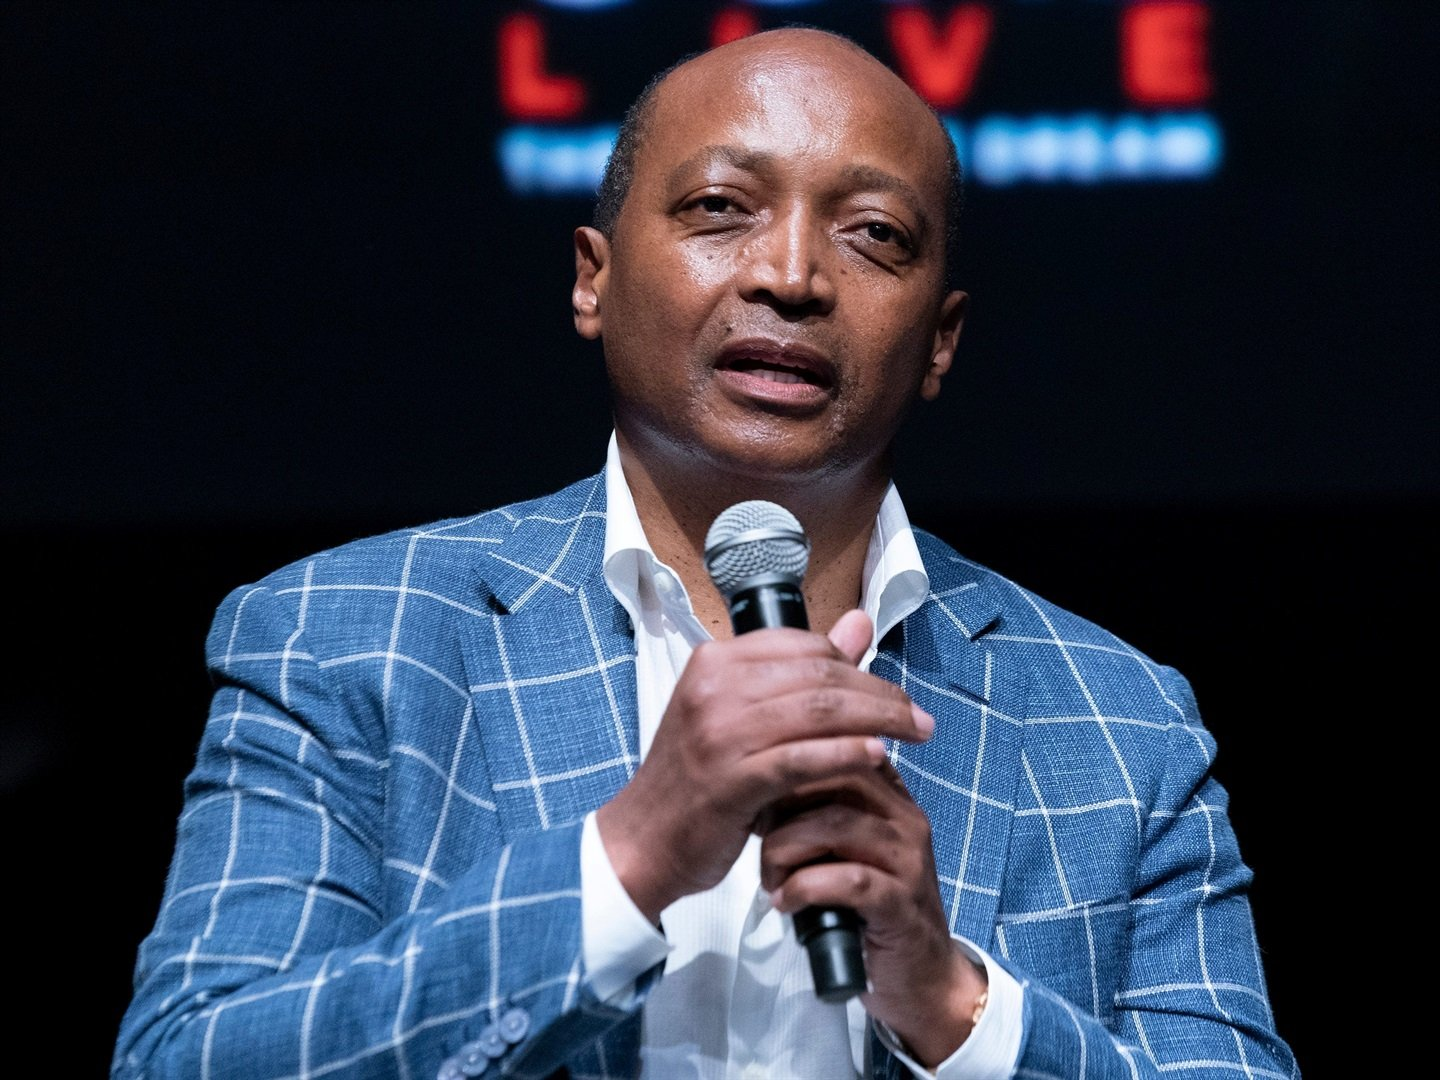 Meet the 15 richest people in Africa, who have a